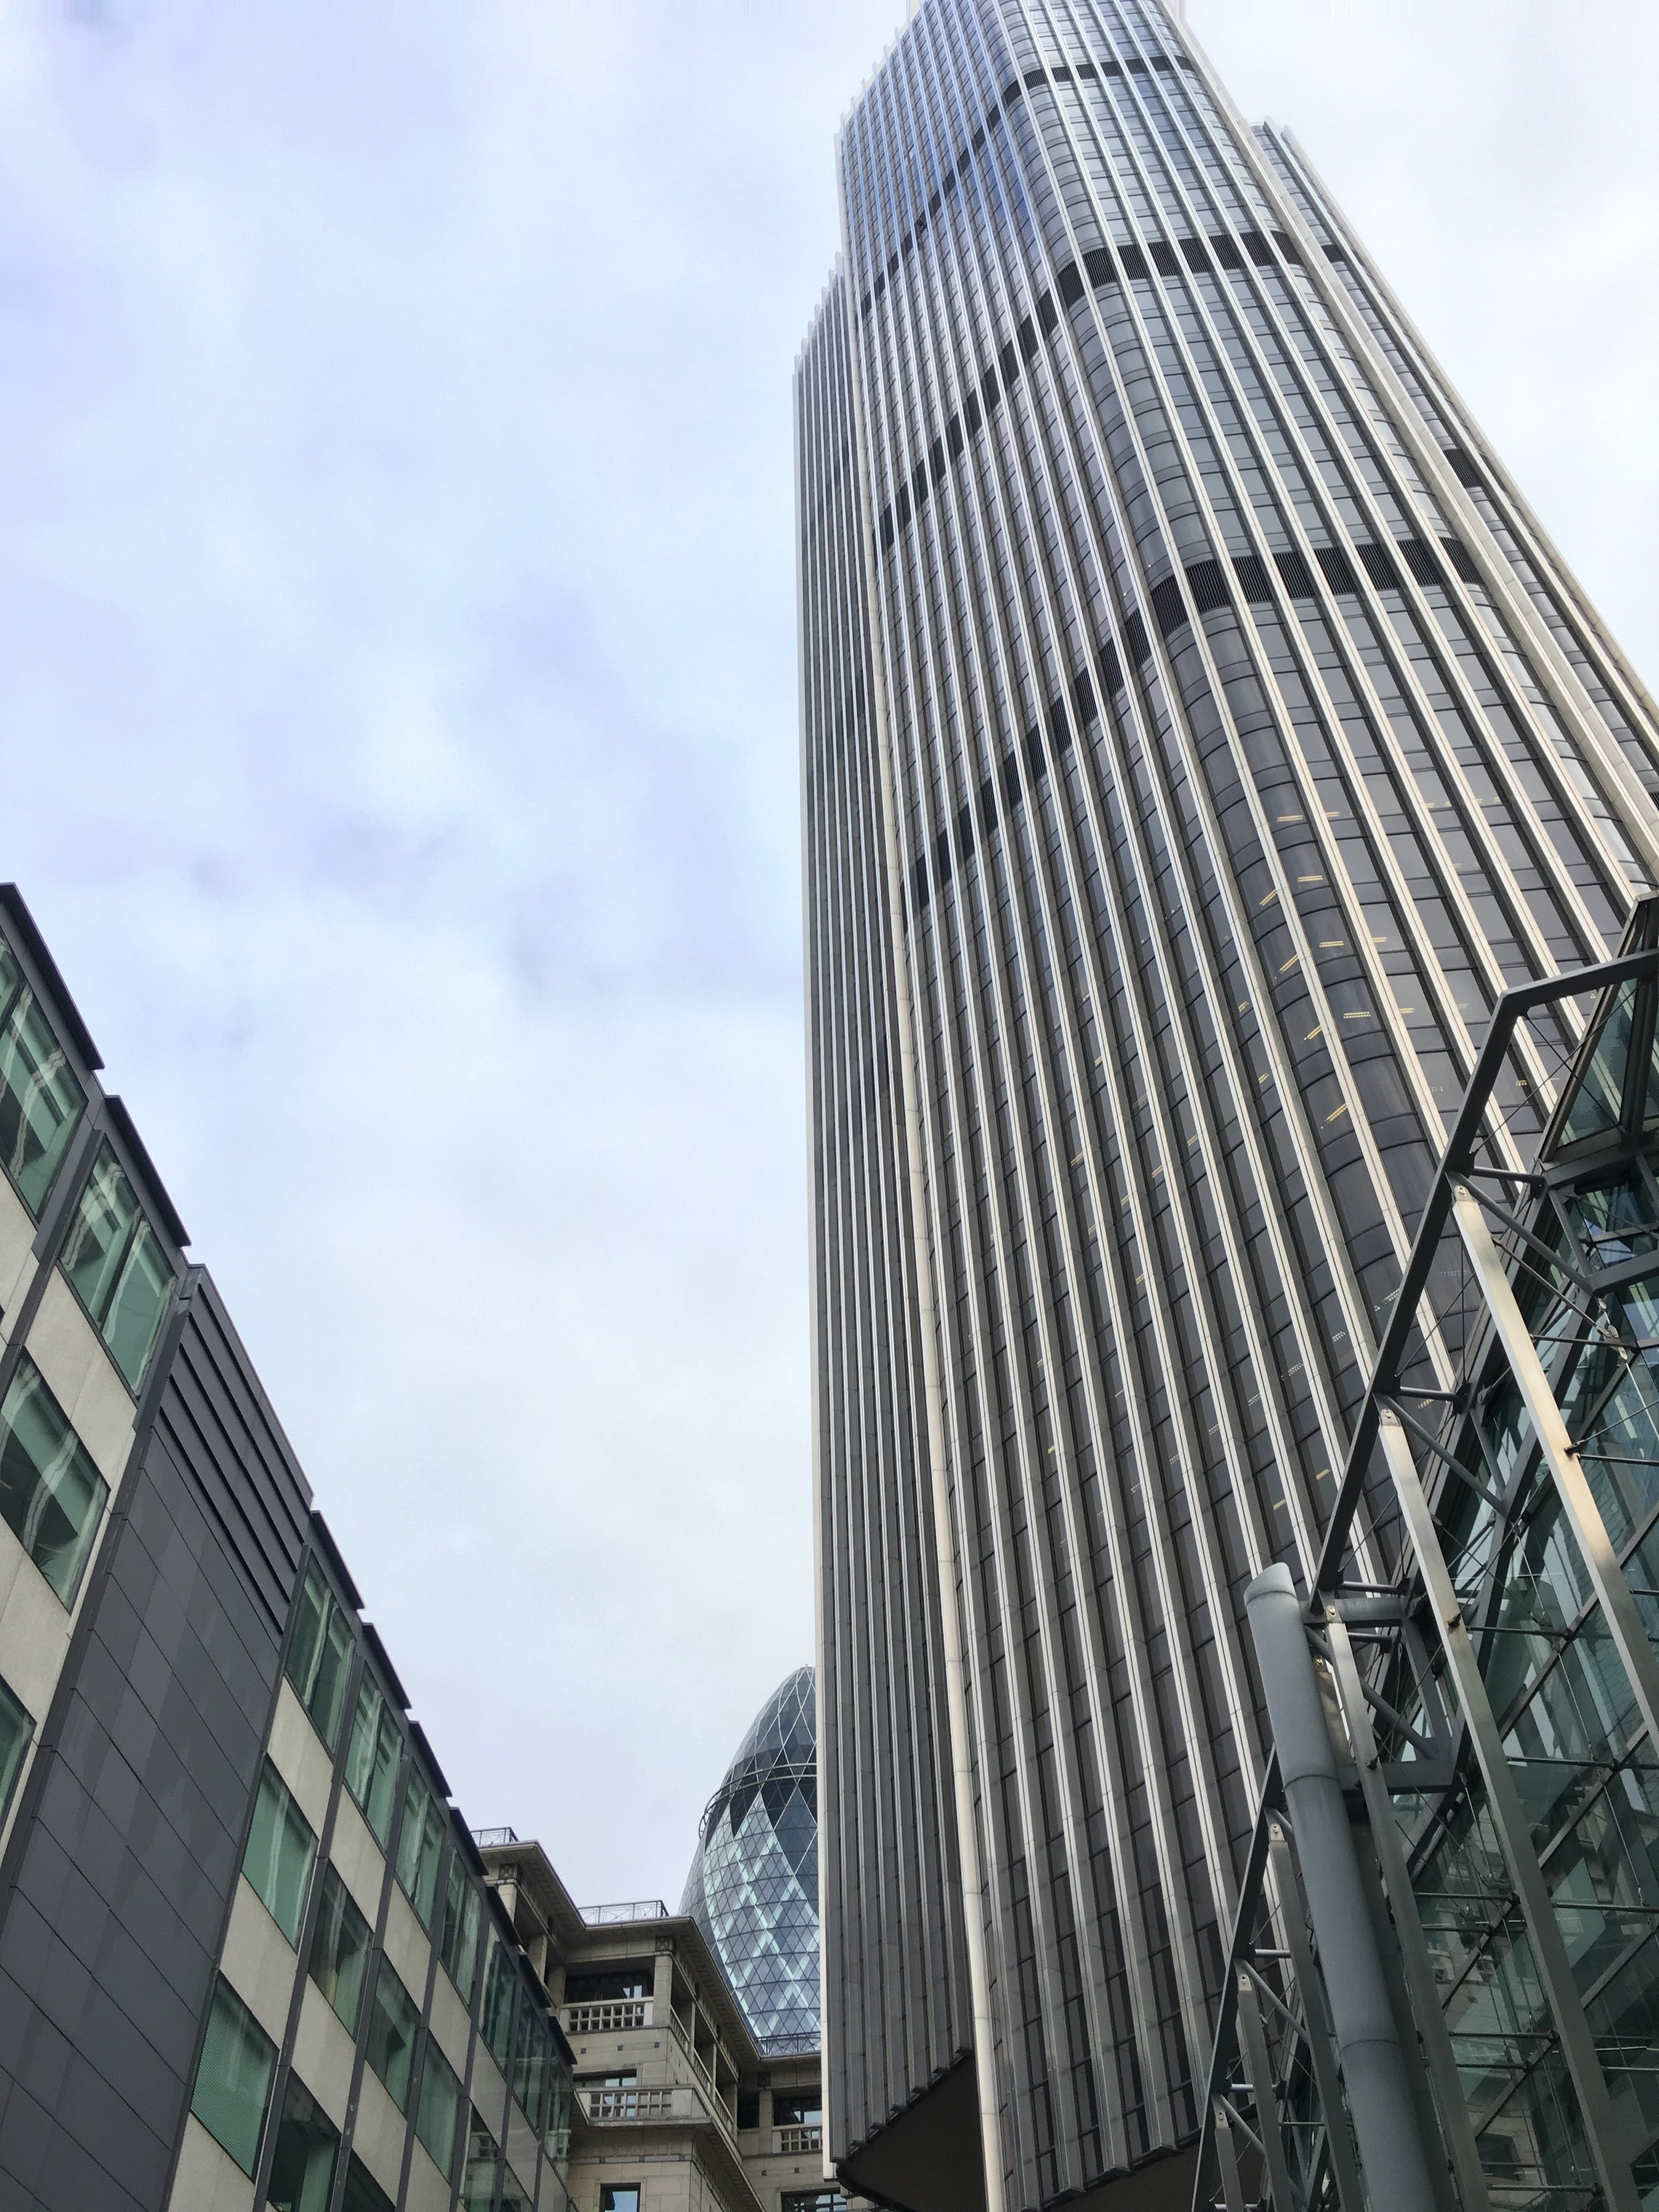 Tower 42 (with the Gherkin in the background)